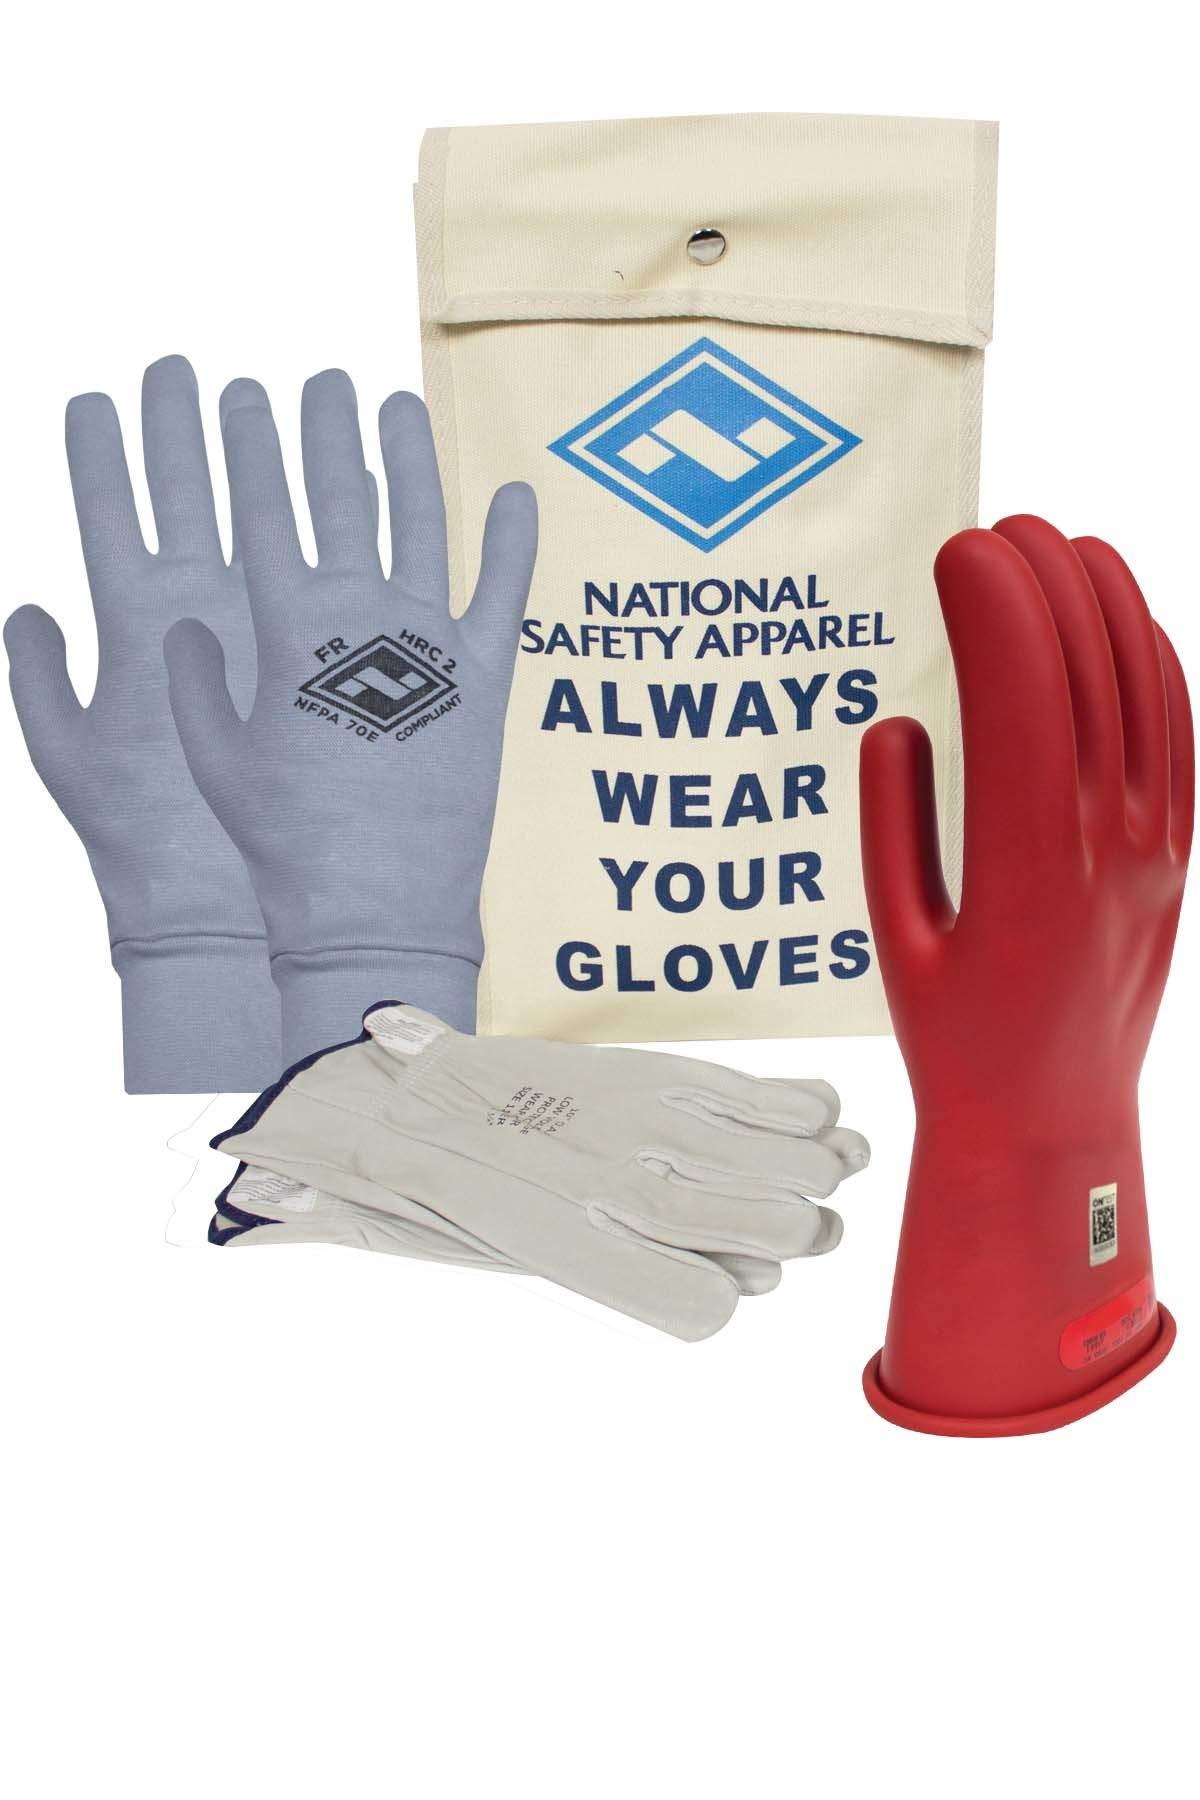 National Safety Apparel Class 0 Red Rubber Voltage Insulating Glove Premium Kit with FR Knit Glove and Leather Protectors, Max. Use Voltage 1,000V AC/ 1,500V DC (KITGC0010RAG)